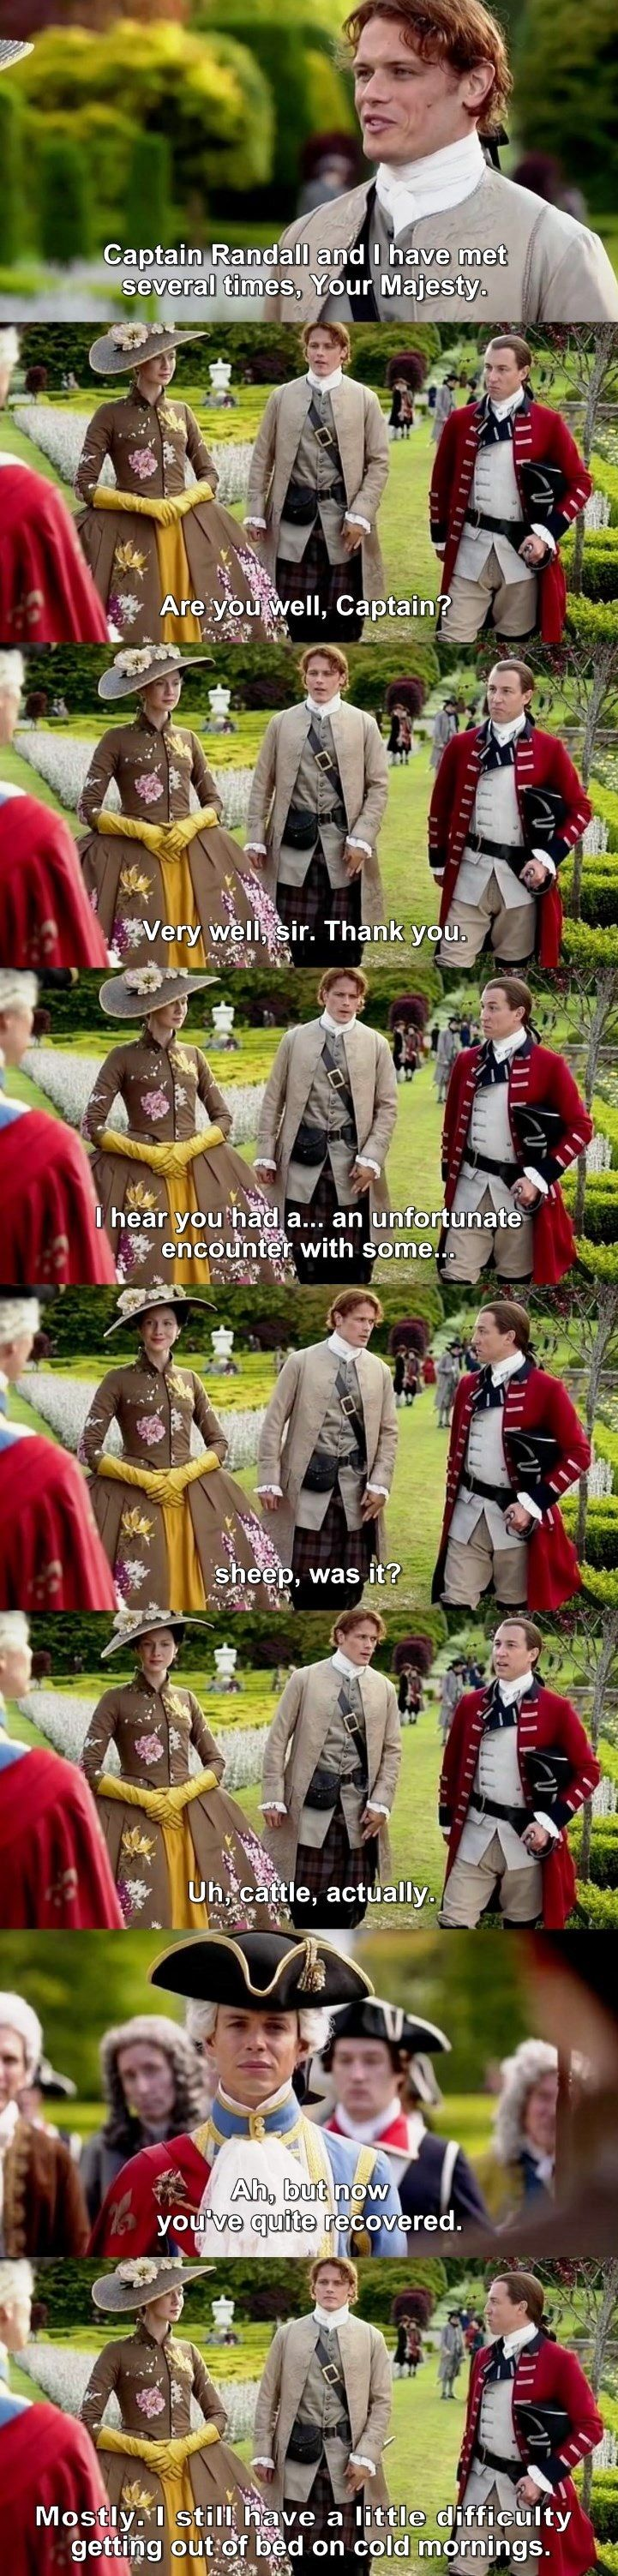 """""""Captain Randall and I have met several times, Your Majesty"""" - Jamie, Claire, King Louis and Jack Randall #Outlander"""